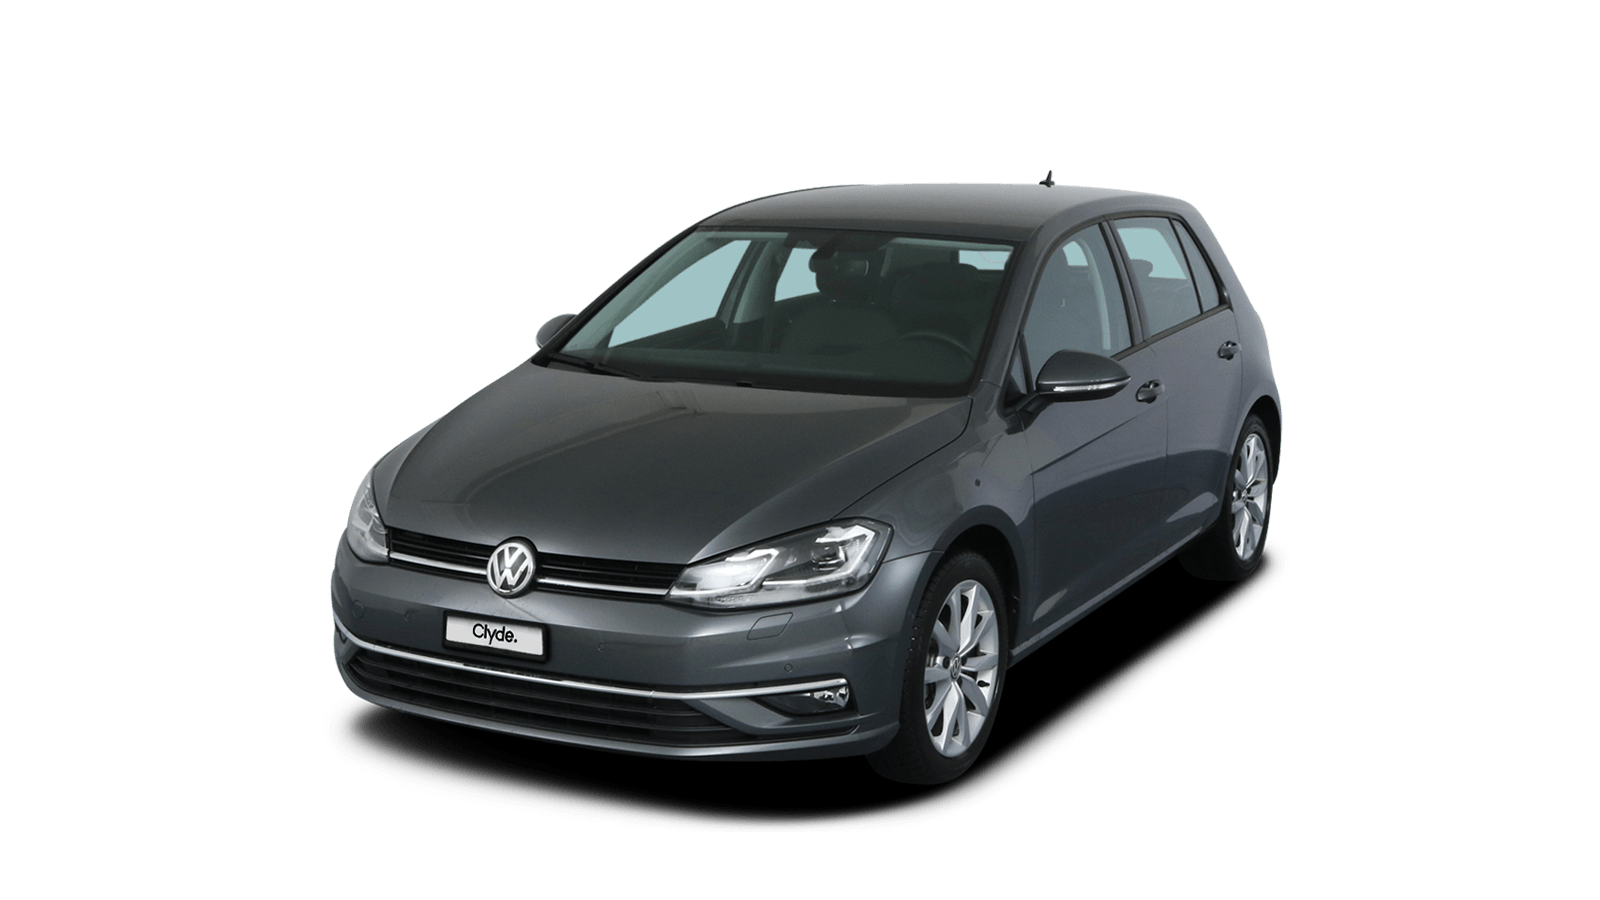 VW Golf Grey front - Clyde car subscription